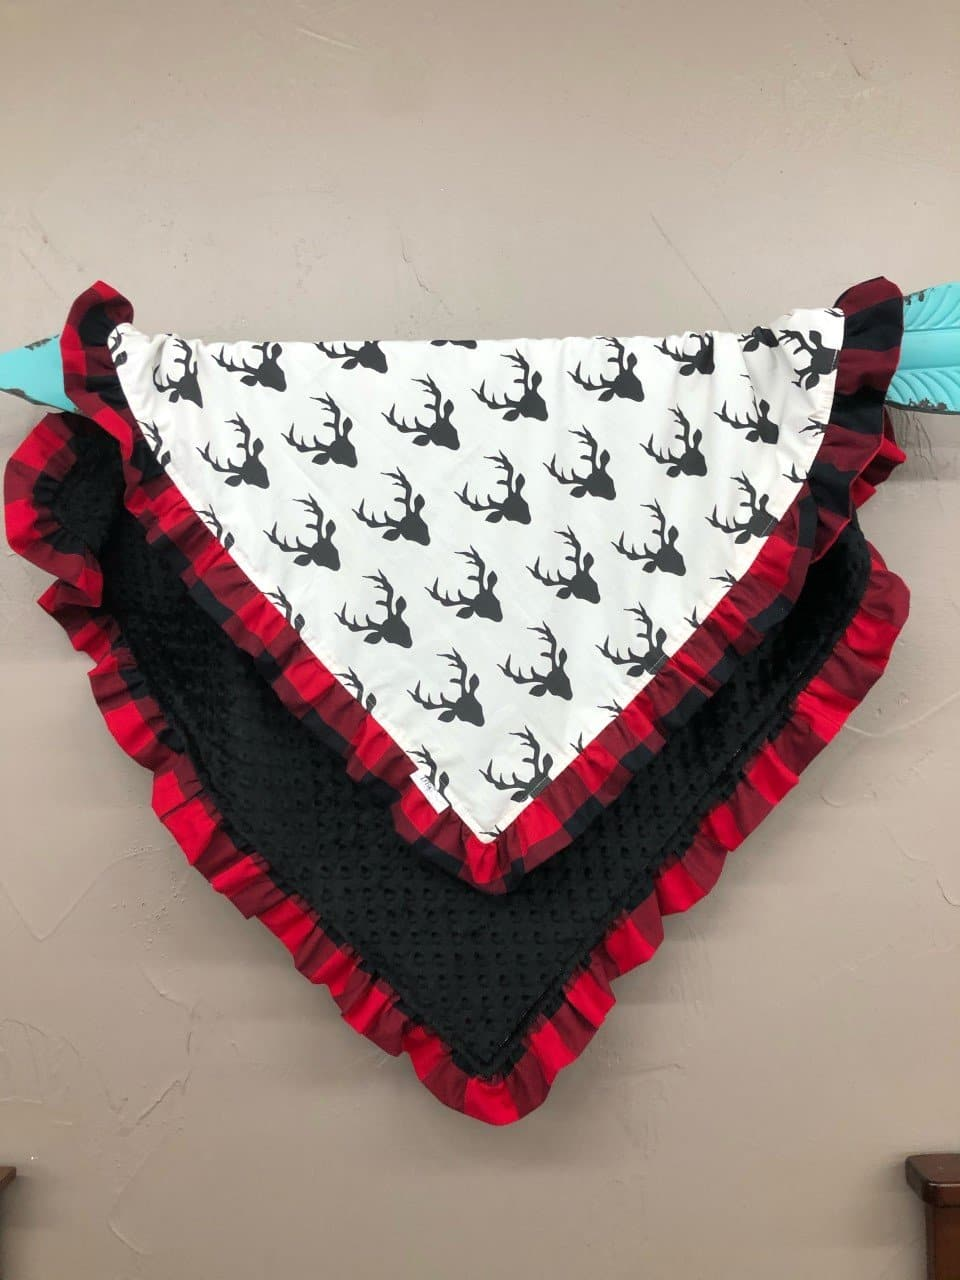 Ruffle Blanket - *1 Name Embroidered Free* Black buck and black minky with red black check ruffle